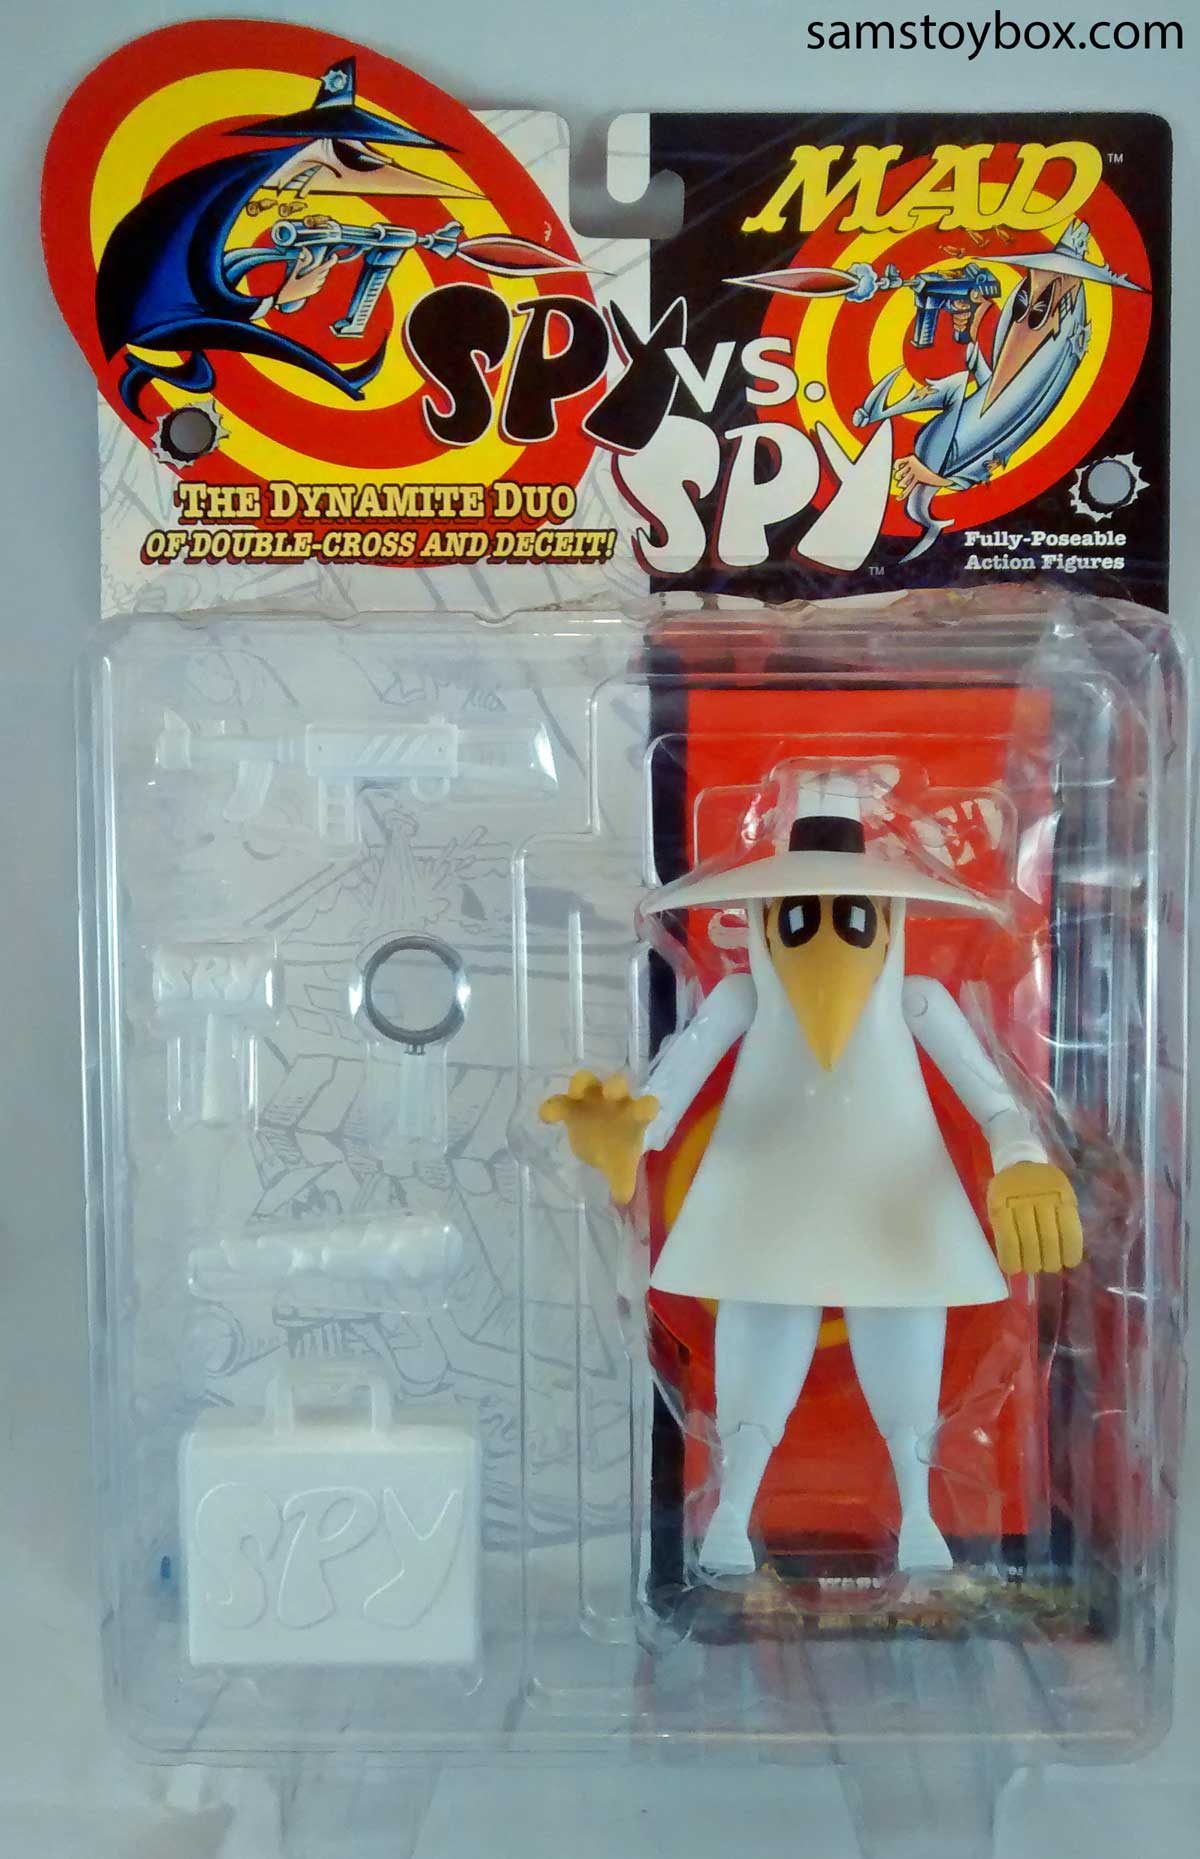 Mad Magazine's Spy vs. Spy Action Figure